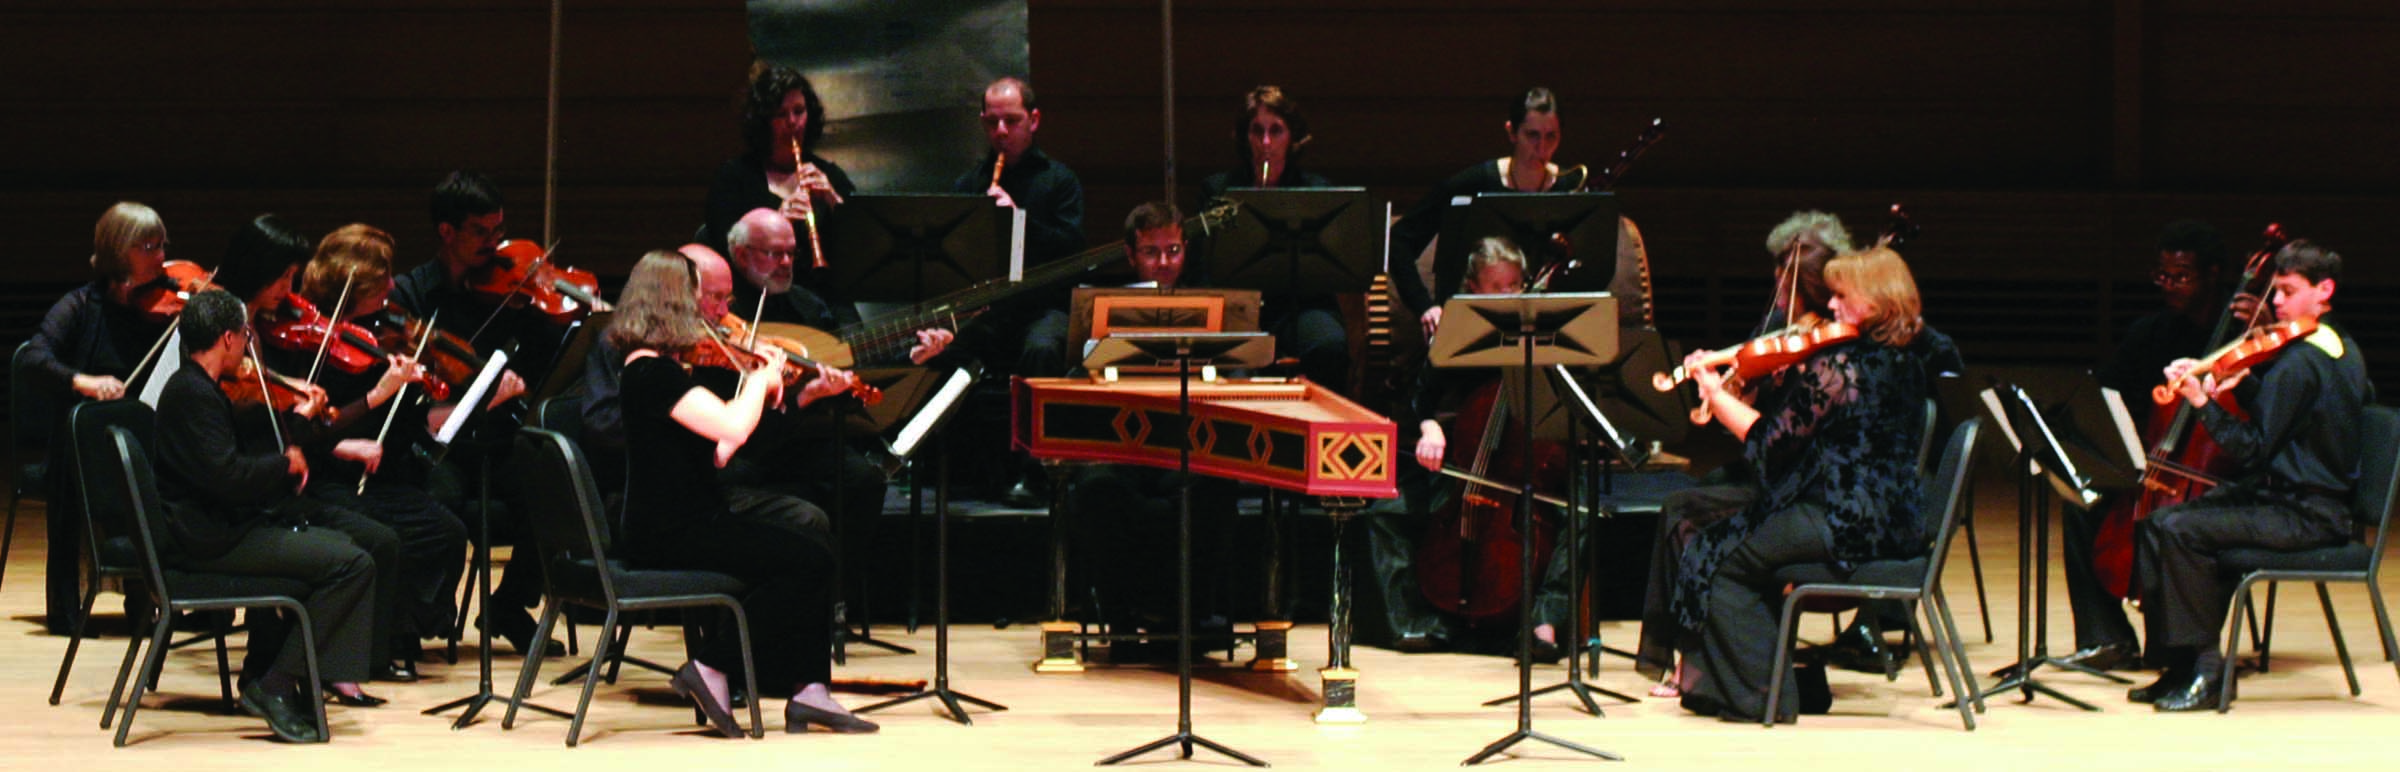 Musicians, singers, and actor bow while onstage in concert hall